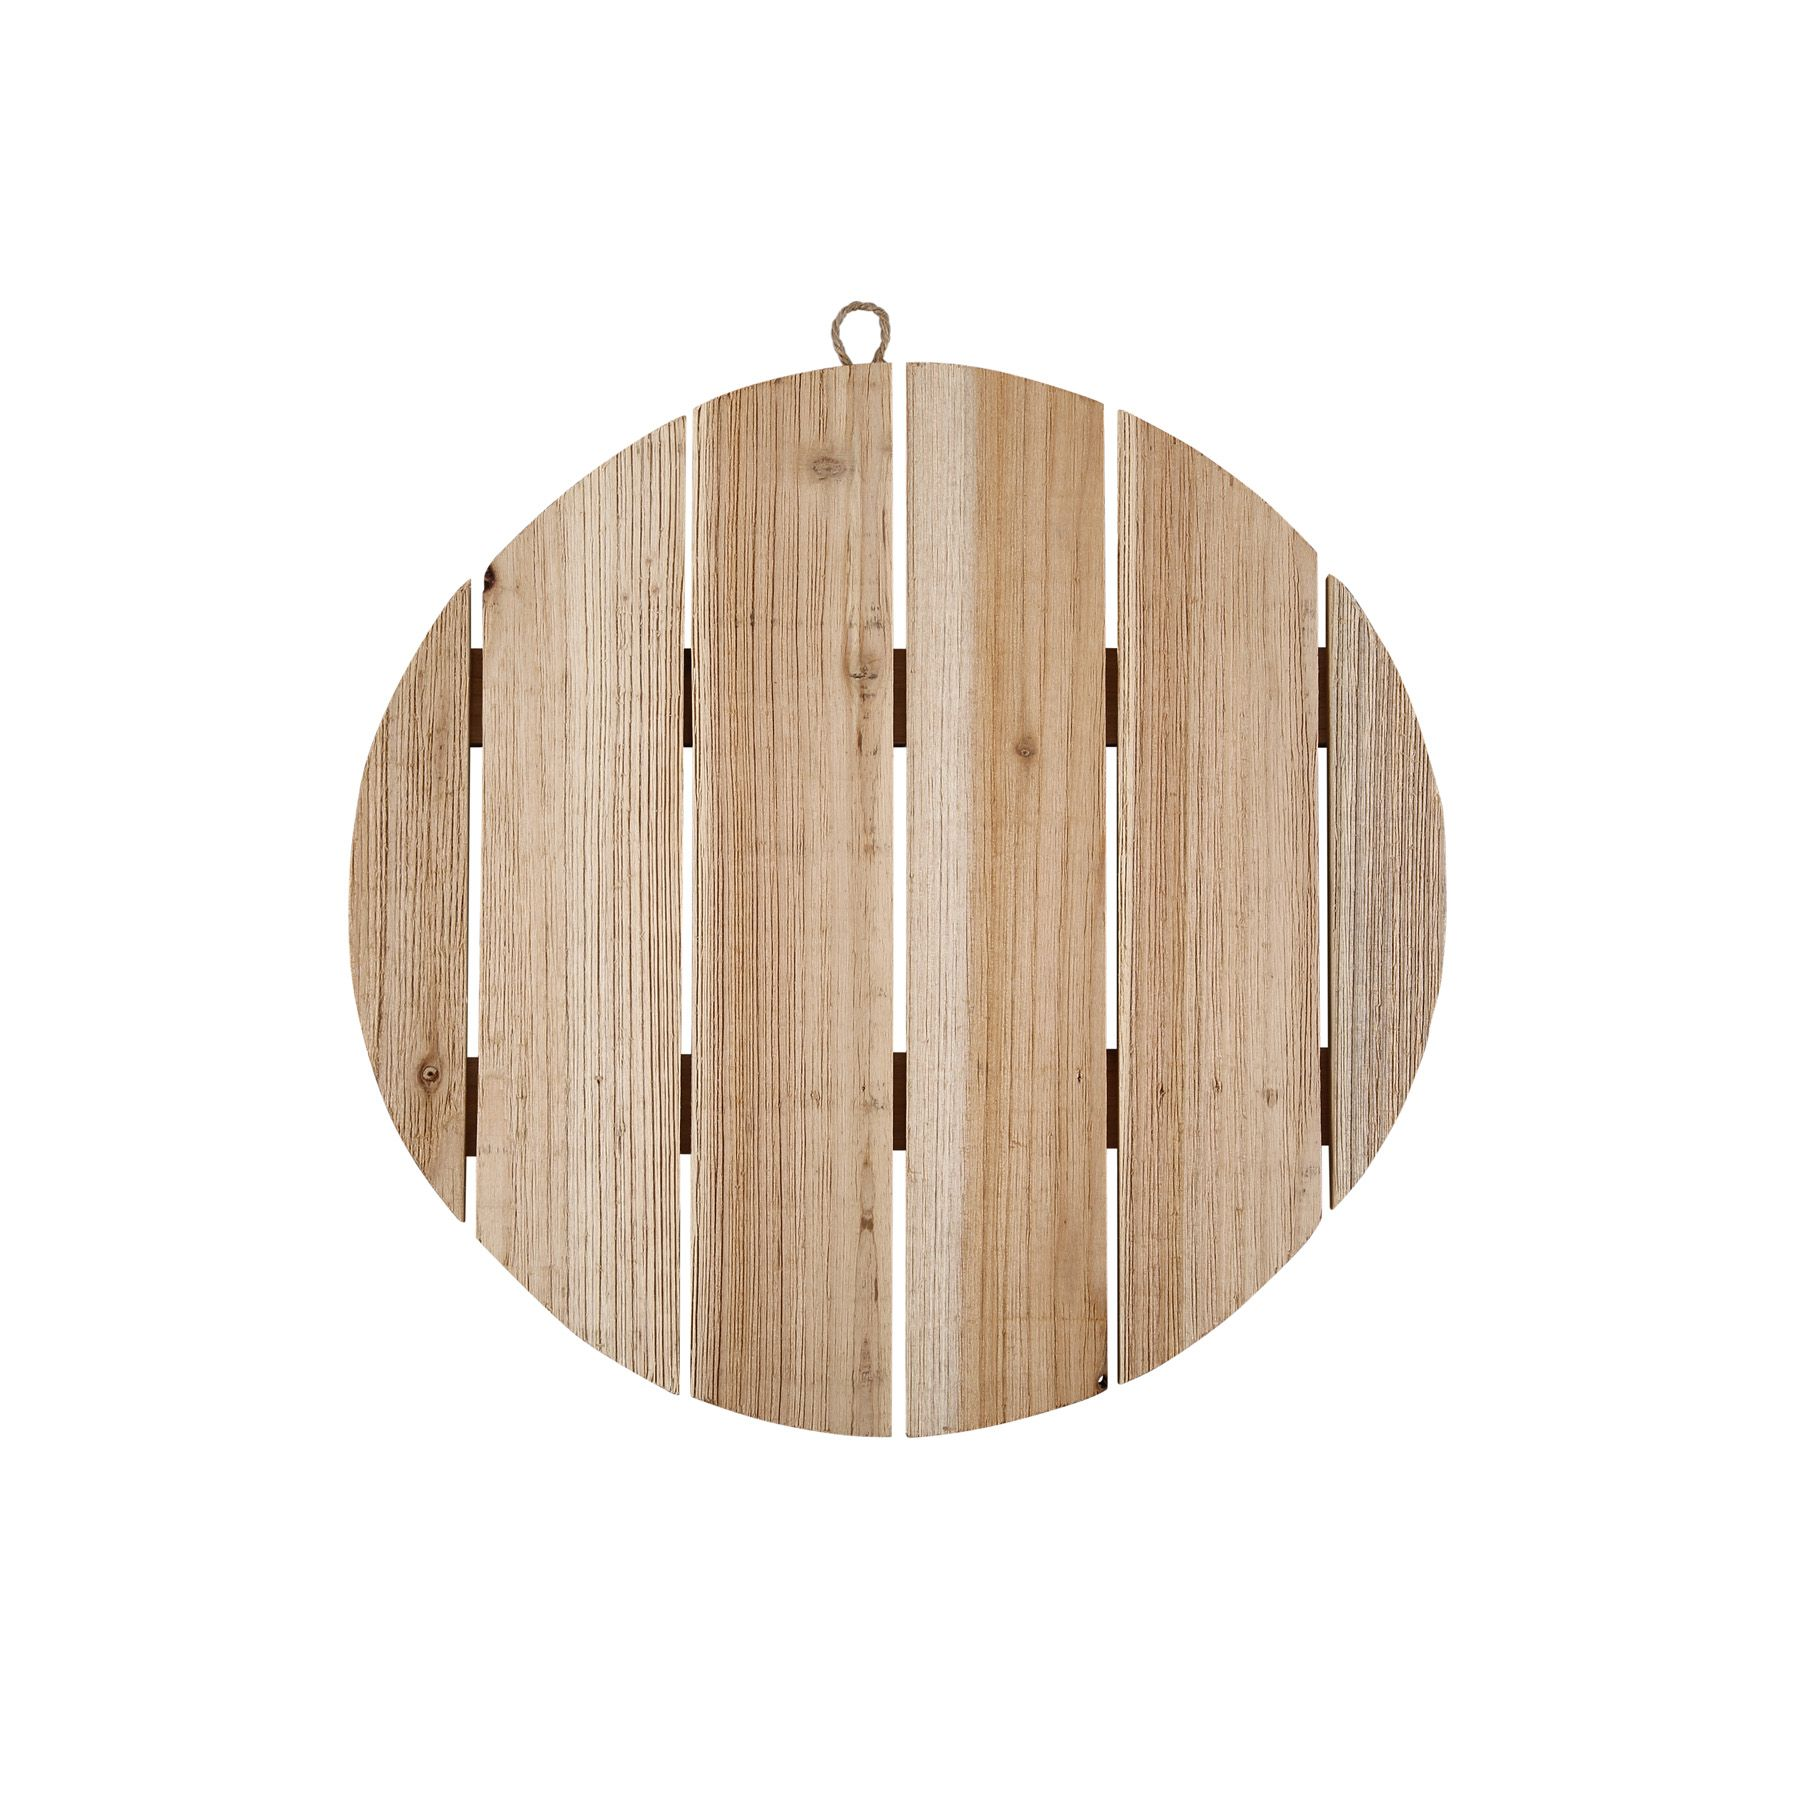 Round Wood Pallet Plaque By Artminds Wooden Pallet Crafts Wood Pallets Pallet Crafts